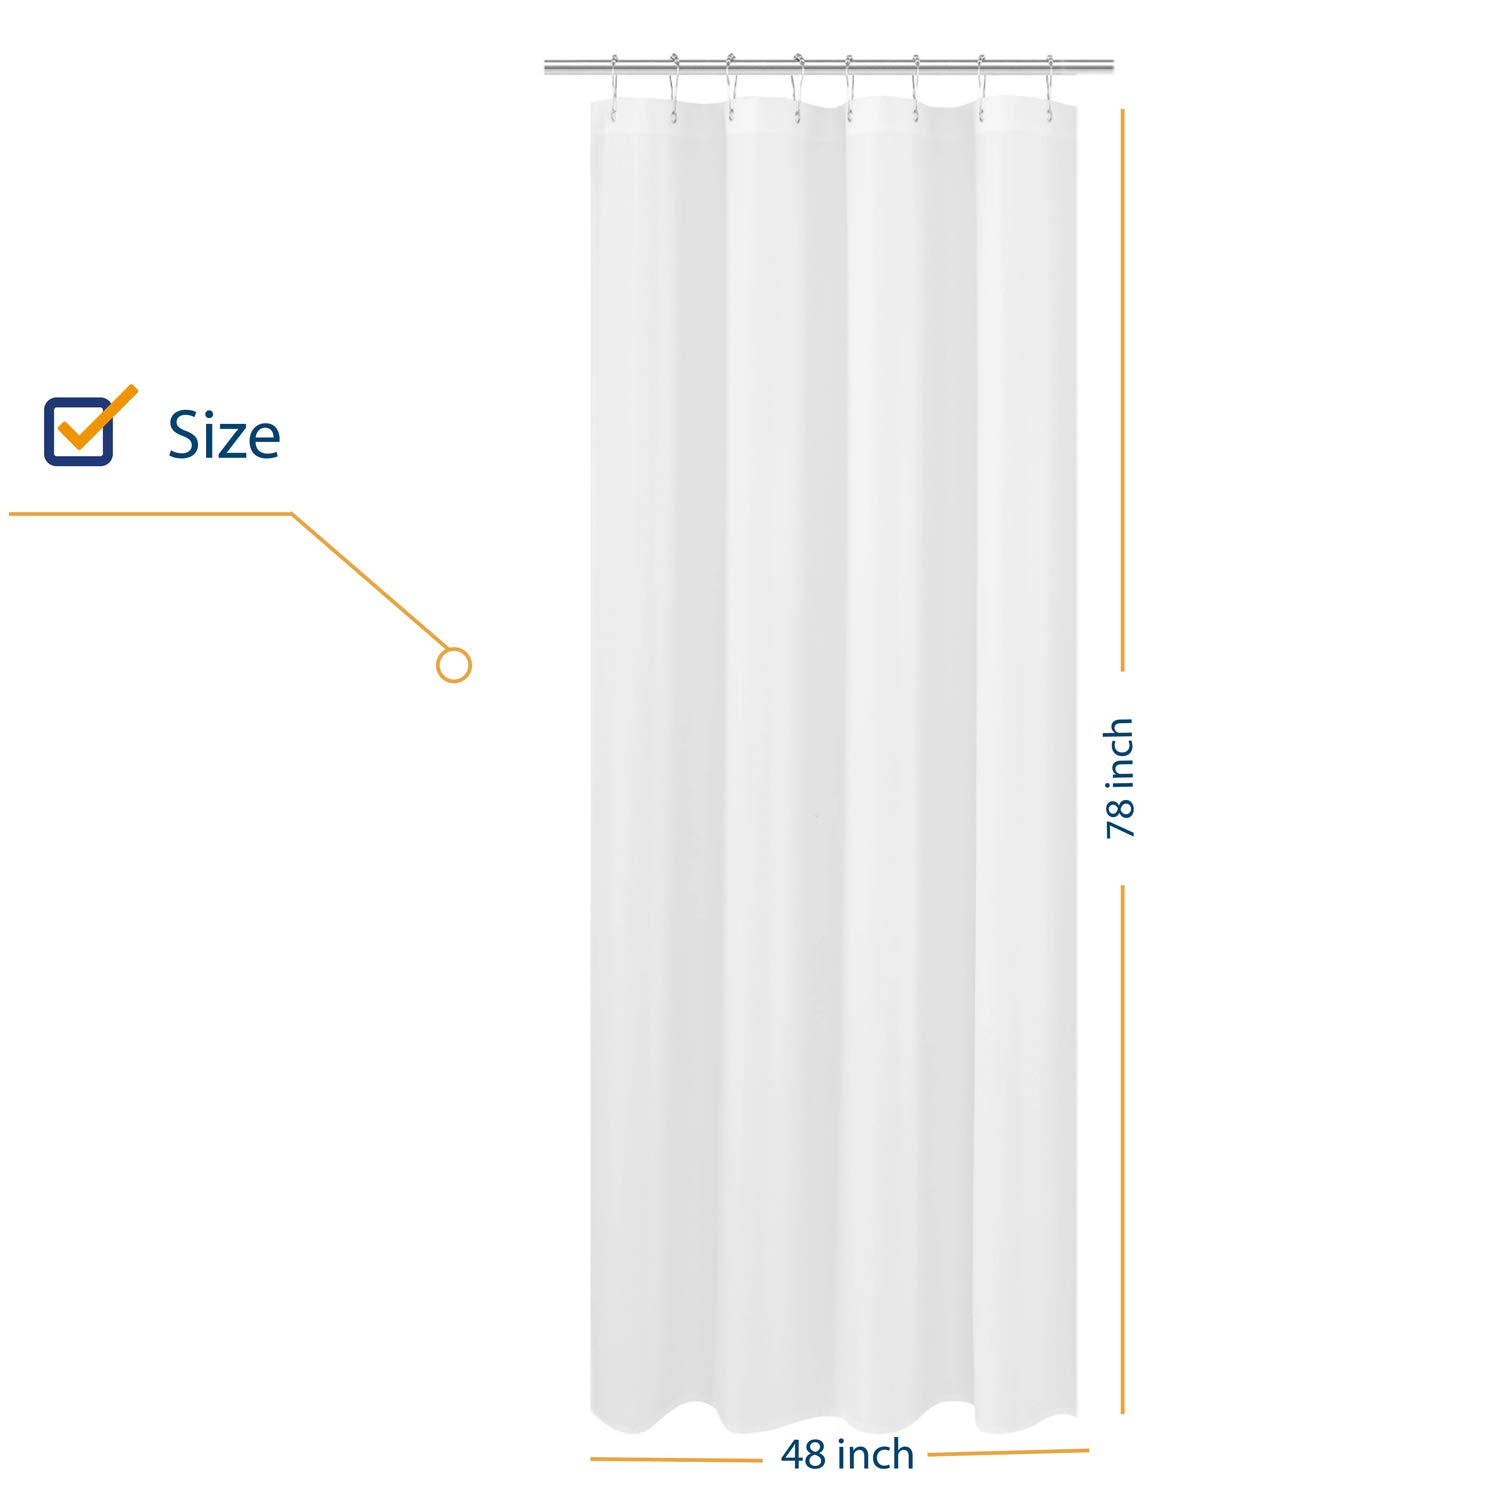 N&Y HOME Fabric Shower Curtain Liner Long Stall Size 48 x 78 inches, Hotel Quality, Washable, Water Repellent, White Bathroom Curtains with Grommets, 48x78